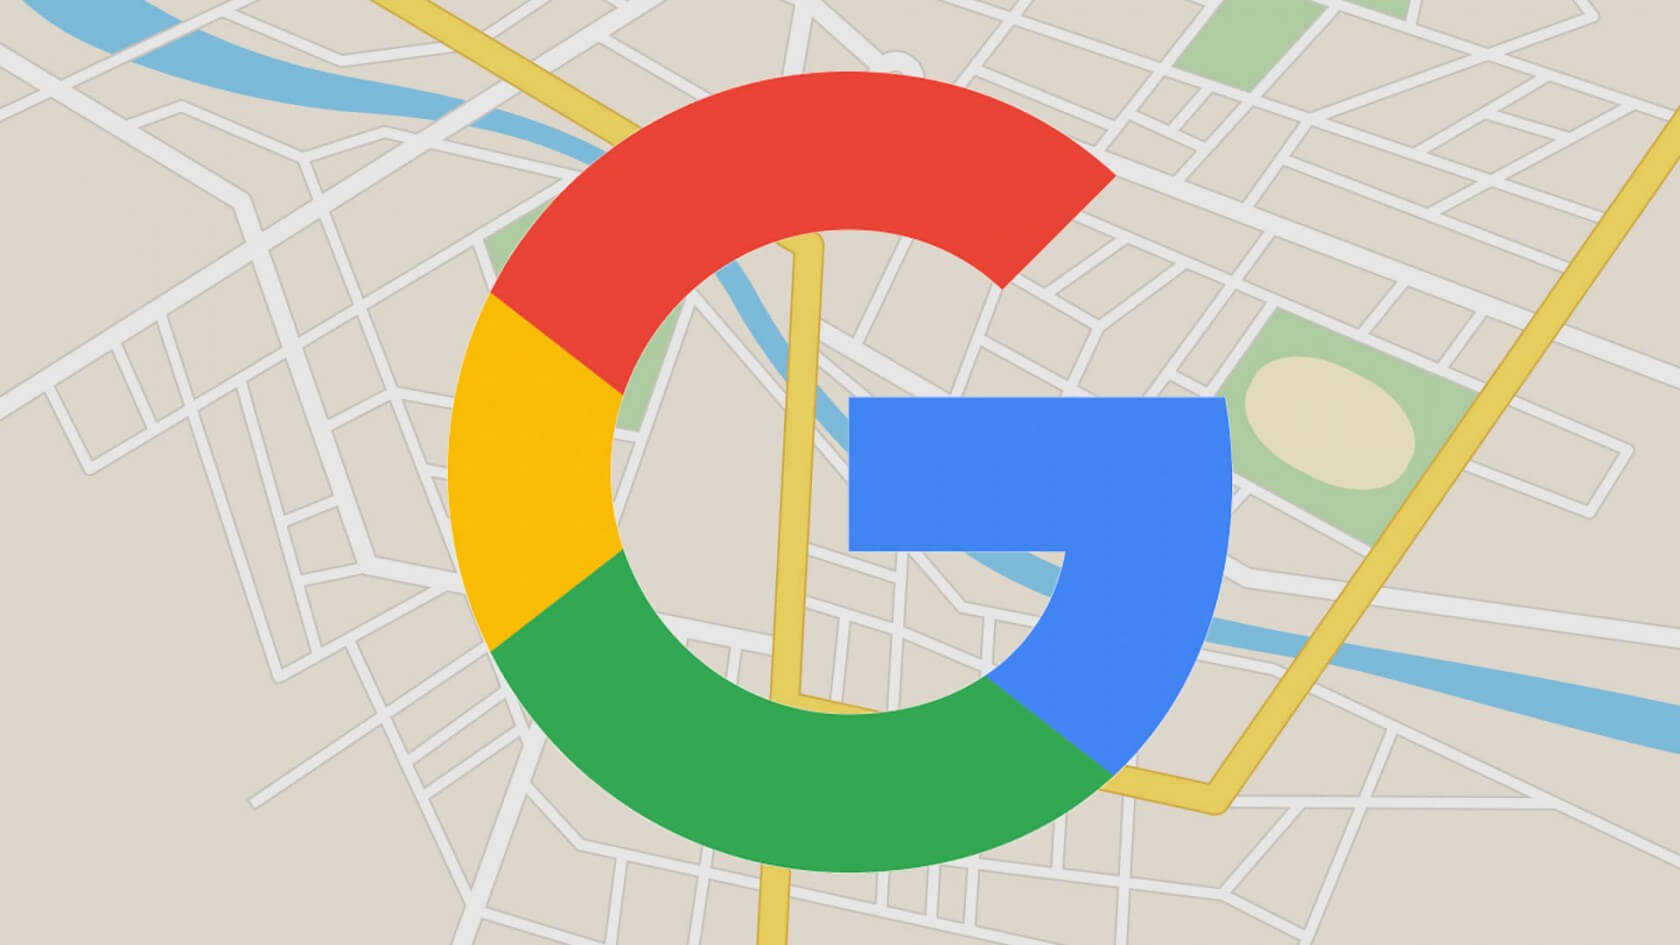 Google will soon offer auto-deletion tools for your search and location data